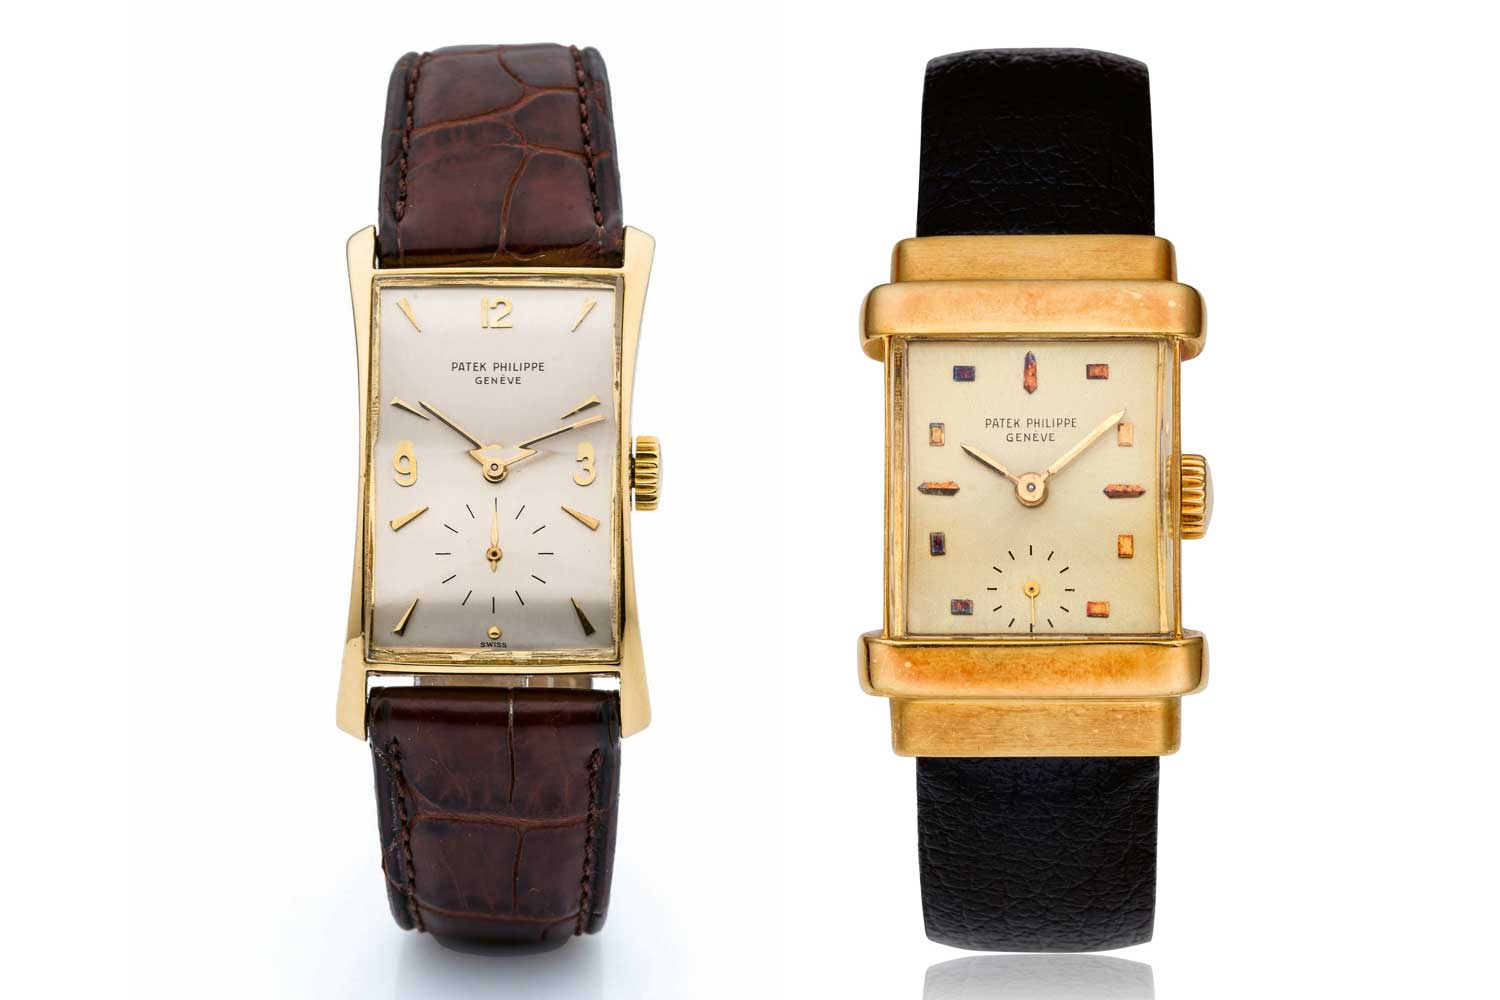 """C. Markowski made some of the most dramatic cases for Patek Philippe. Seen here are the rRef. 1450 or """"Top Hat"""" (left) and ref. 1593 or """"Hourglass"""" (Images: Collectability and Antiquorum)"""